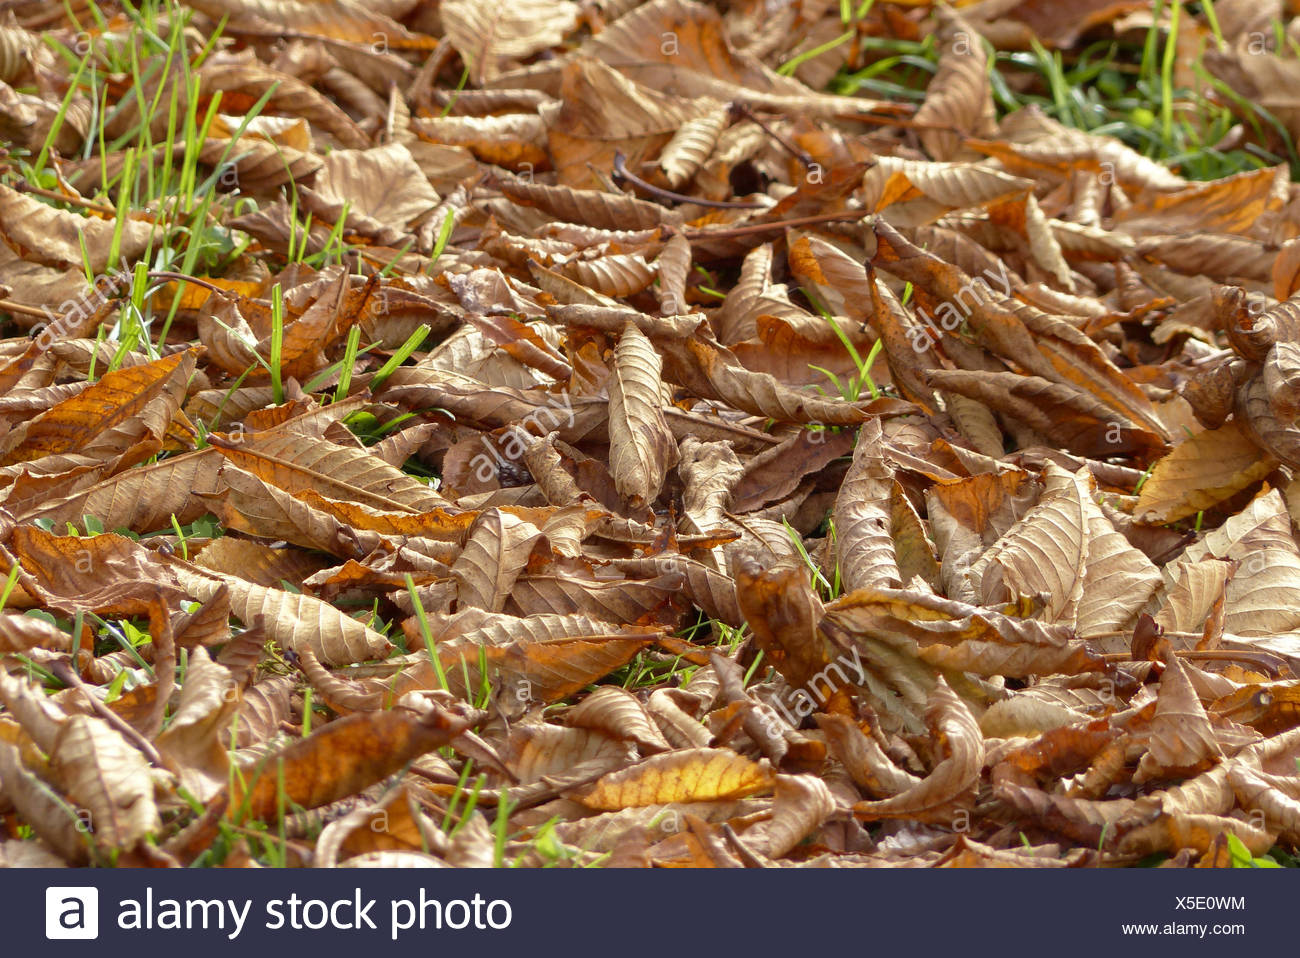 Herbstlaub am Boden,Autumn leaves on the ground,autumn, harvest, fall, leaves, foliage, beech leaves, season, colorful, detail, Stock Photo